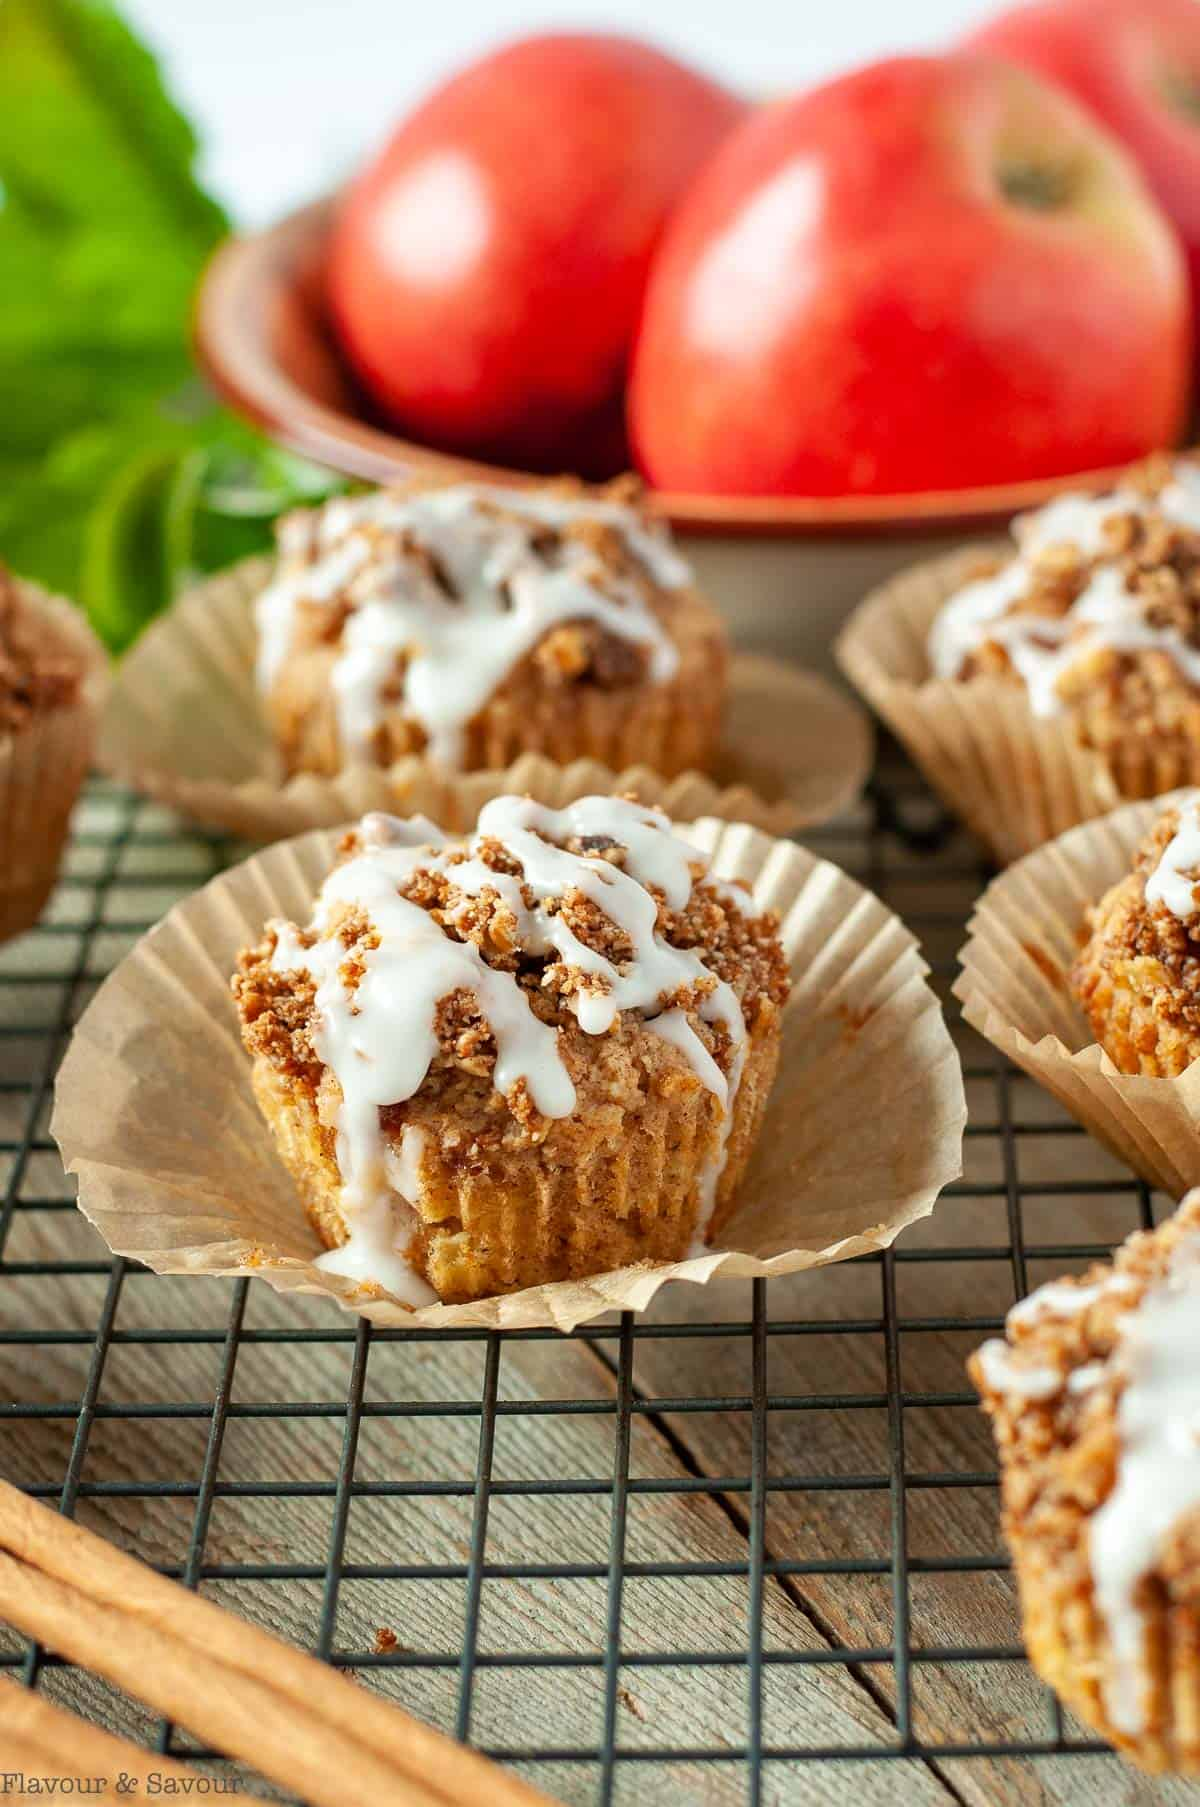 Glazed Apple Muffins with a bowl of apples in the background